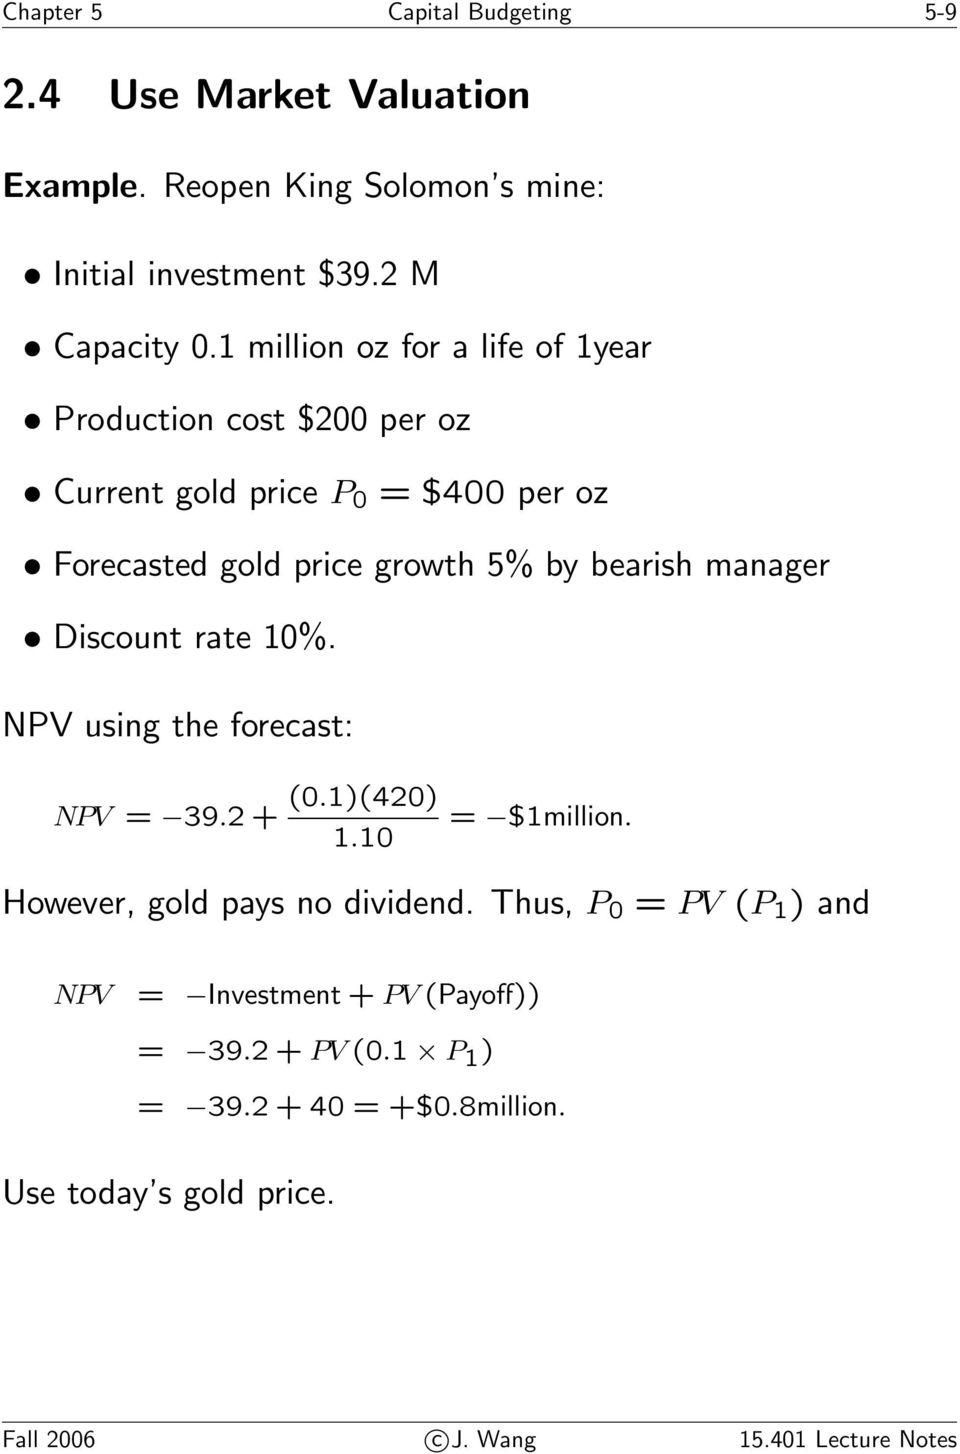 manager Discount rate 10%. NPV using the forecast: NPV = 39.2+ (0.1)(420) 1.10 = $1million. However, gold pays no dividend.